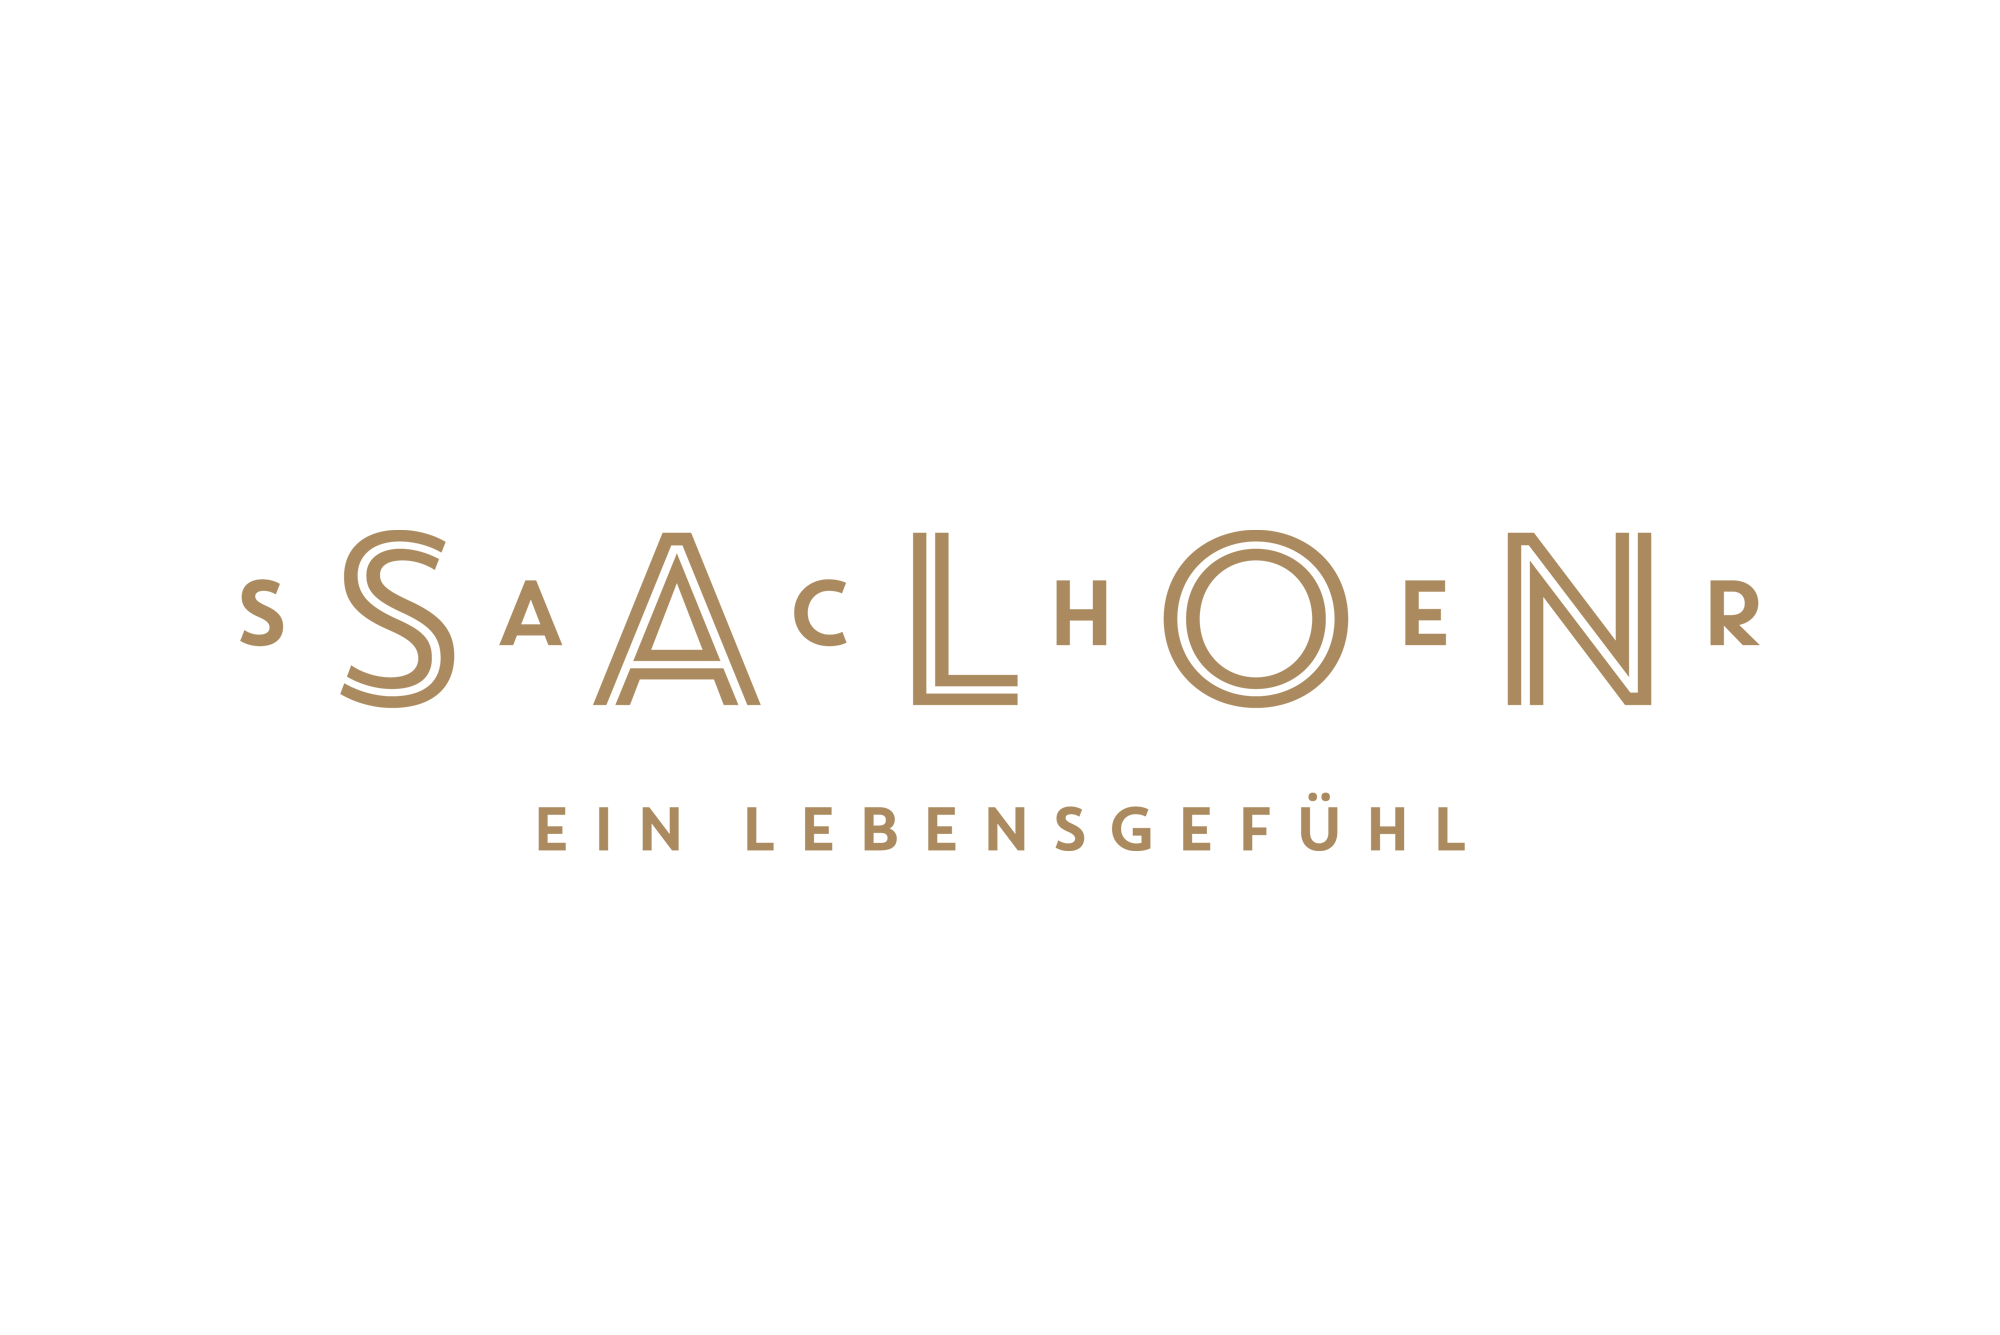 Salon Sacher Brand Logo